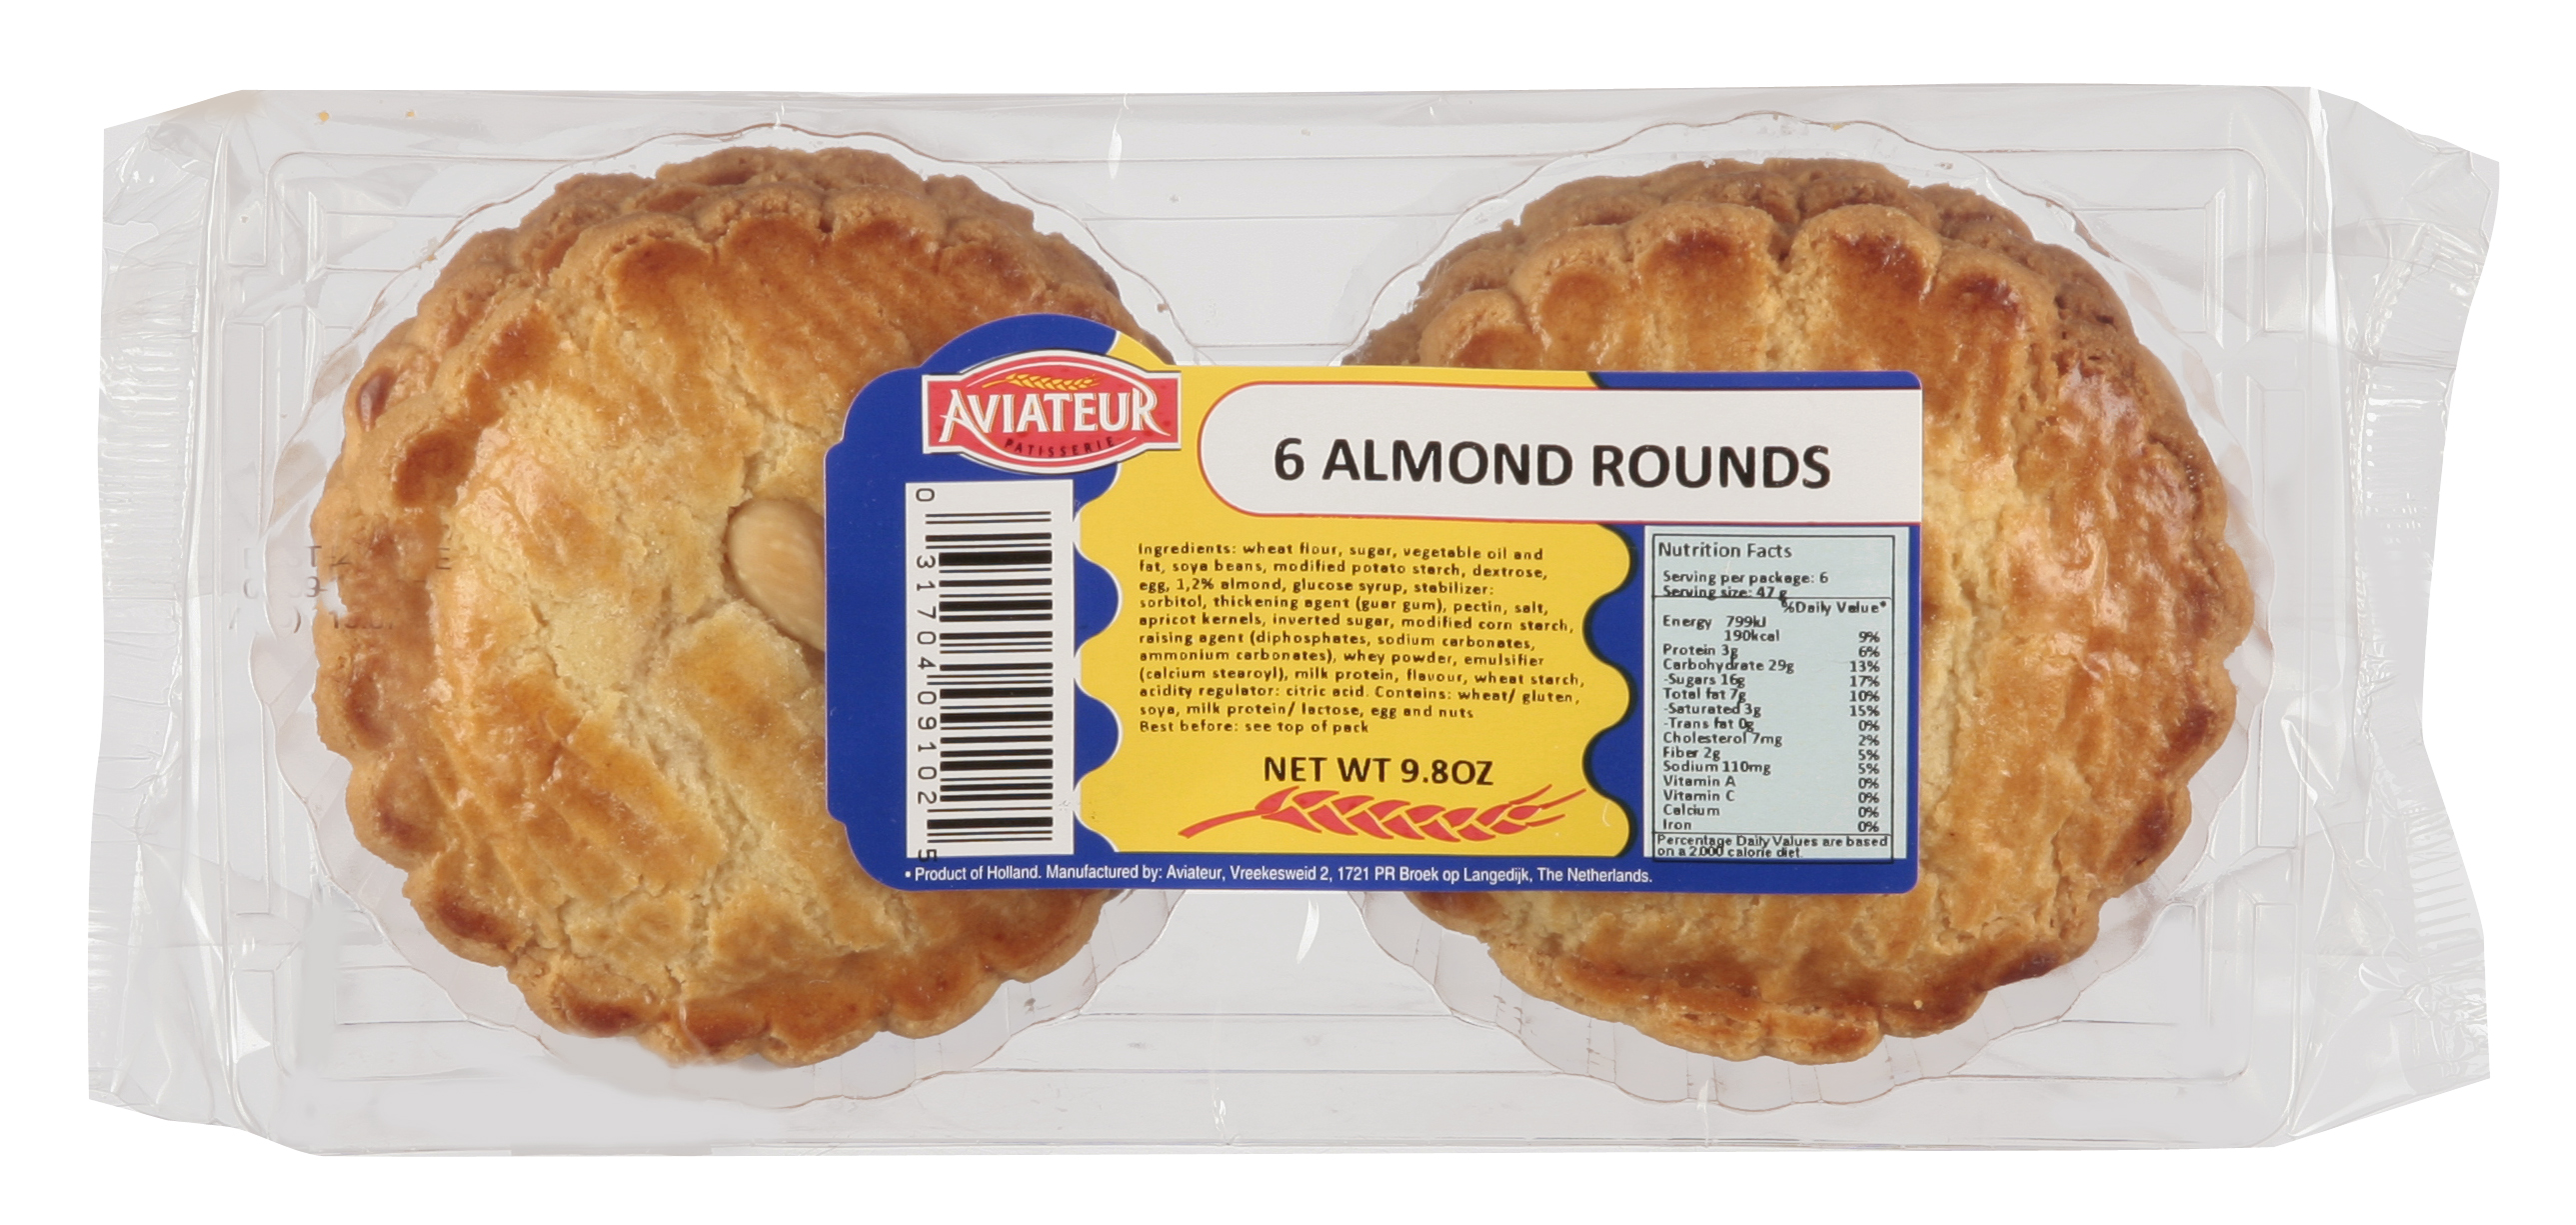 Aviateur Almond Rounds